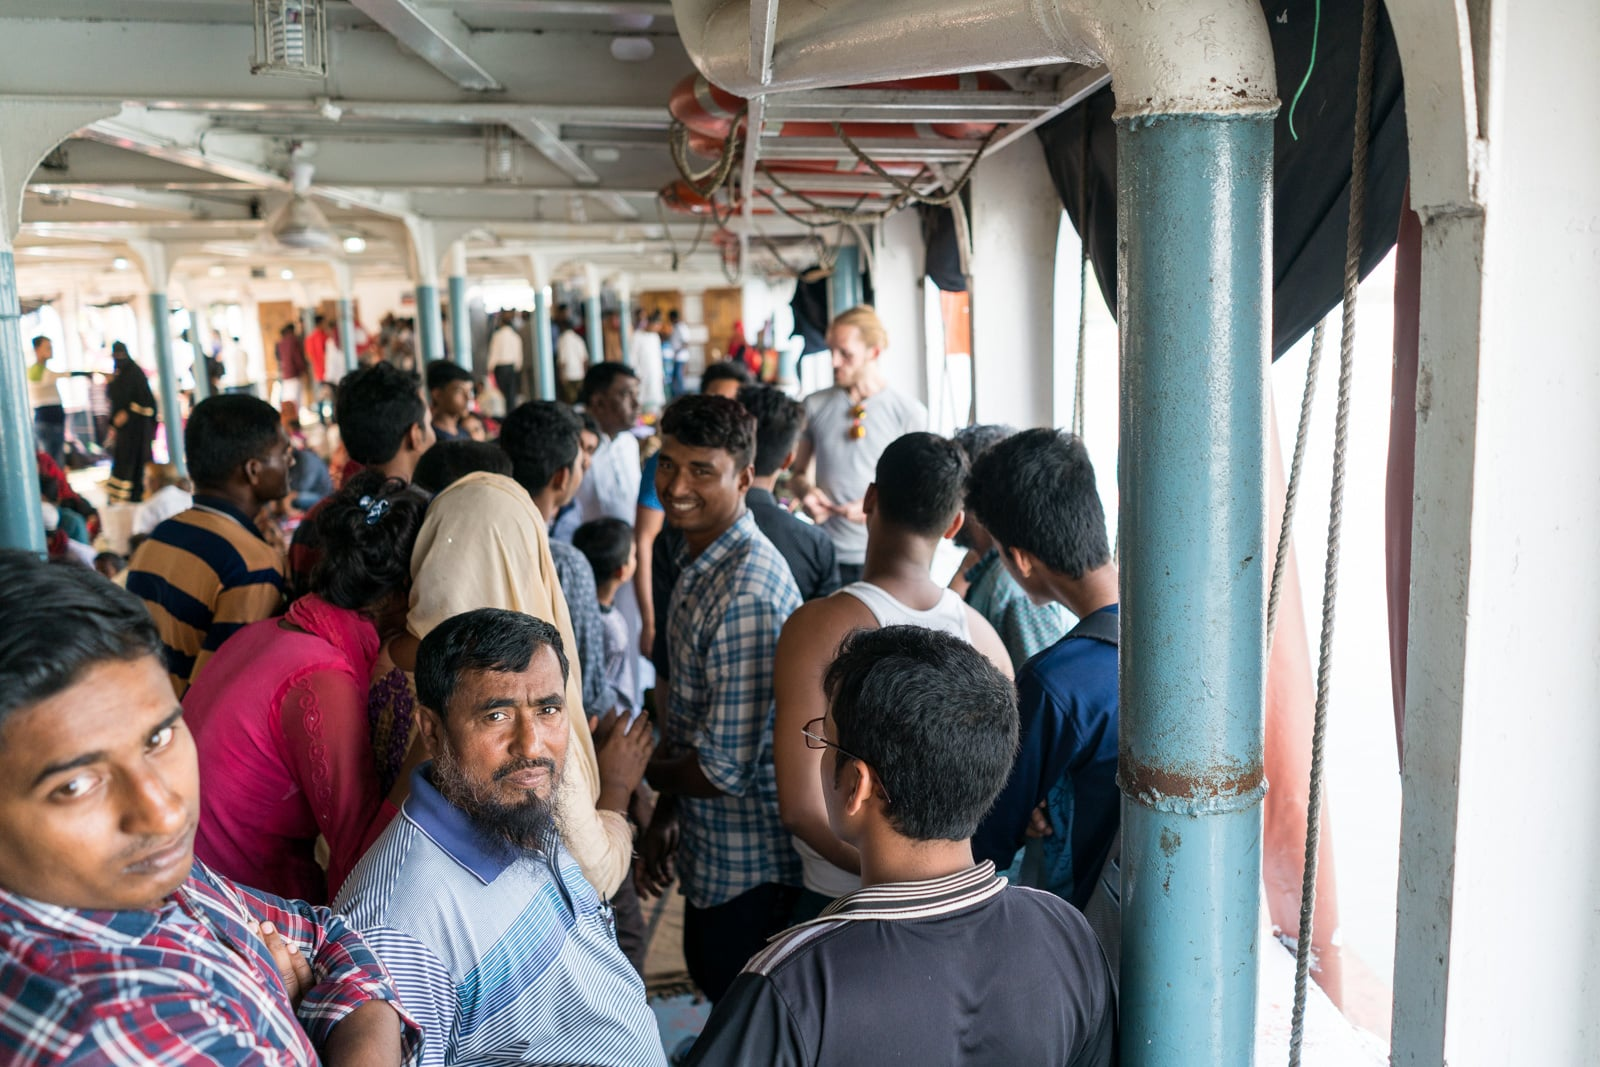 How to get a launch boat from Khulna to Dhaka via Hularhat - Bangladeshi people staring - Lost With Purpose travel blog